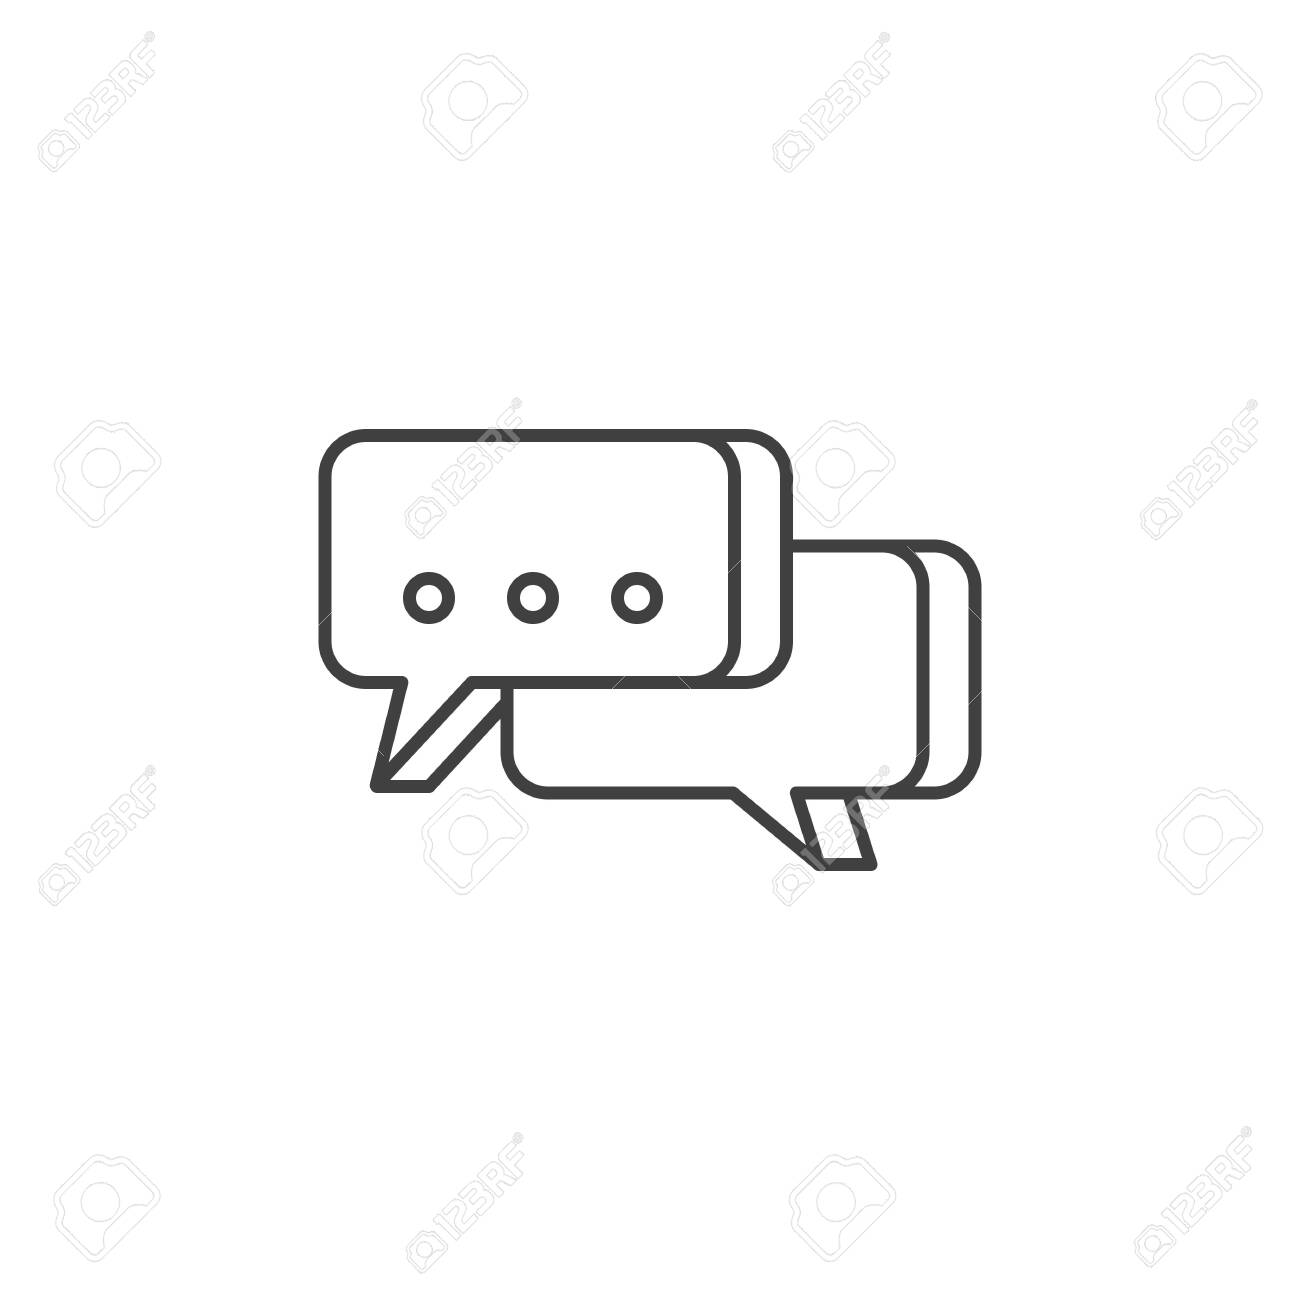 Speech Bubble Icon. Speech Bubble Related Vector Line Icon. Isolated on White Background. Editable Stroke. - 124391960